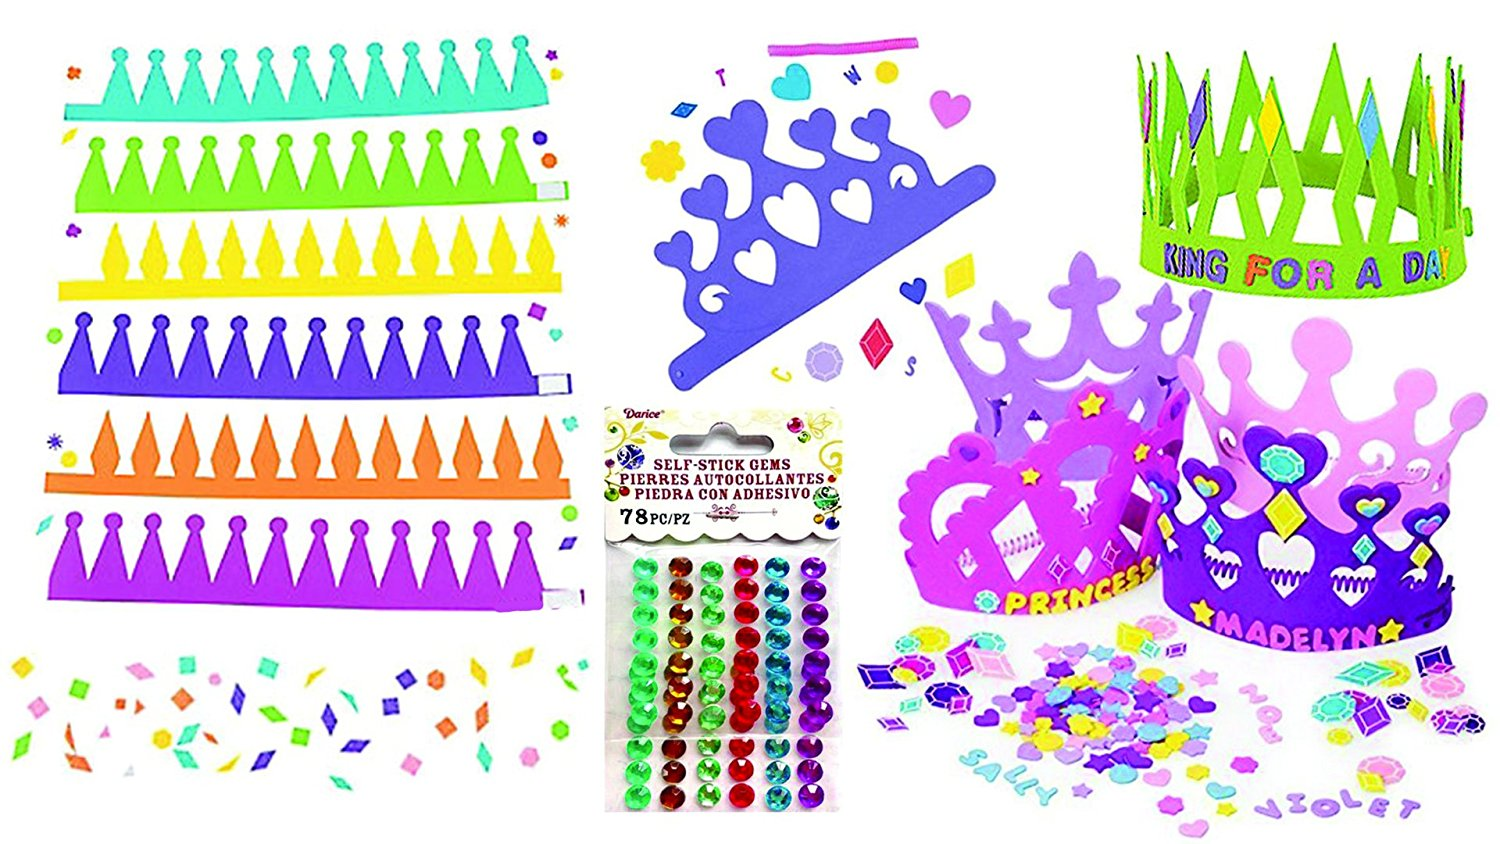 Princess Foam Tiara Kit for 12 & Prince Foam Crown Kit for 12, Birthday Party Craft Activity or Favor Set, Over 900 Self-Adhesive Shapes, Letters and 156 Gems to Decorate Your Tiaras and Crowns